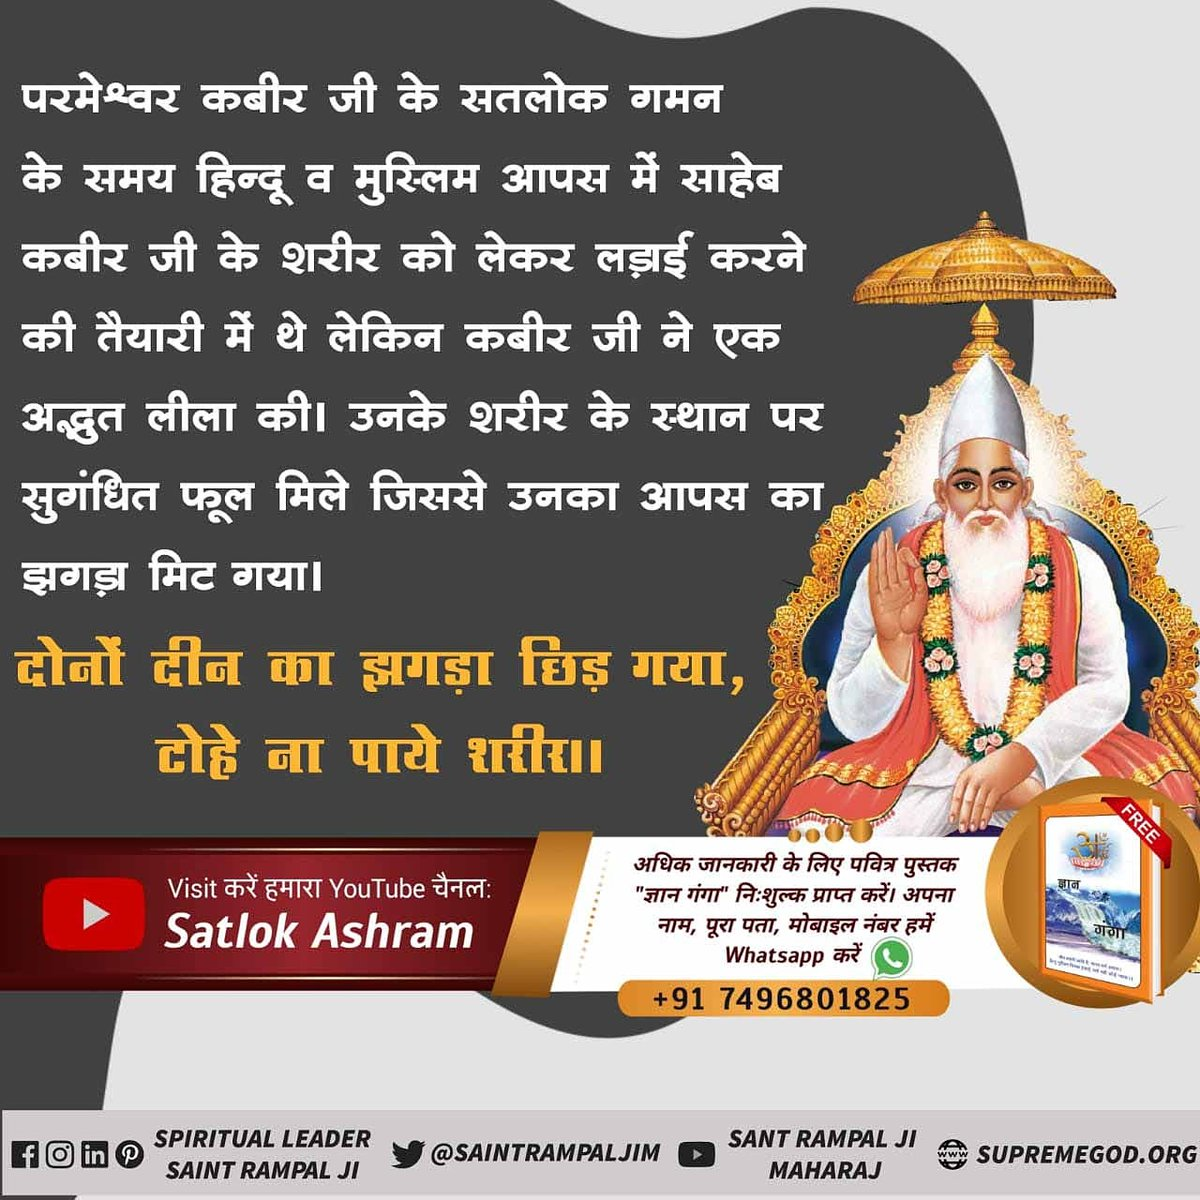 #GodKabir_PrasthanDiwas  Kabir Ji is the imperishable Ram. Say God or say Ram or Rahim Kareem or say Kabir.  This is the divine, he lived in the home of the weaver in Kashi and left in whole body from Maghar. 🌷🌸  @SaintRampalJiM  #कबीरपरमेश्वर_सतलोक_गमन   #tuesdayvibe ⤵️⤵️⤵️⤵️